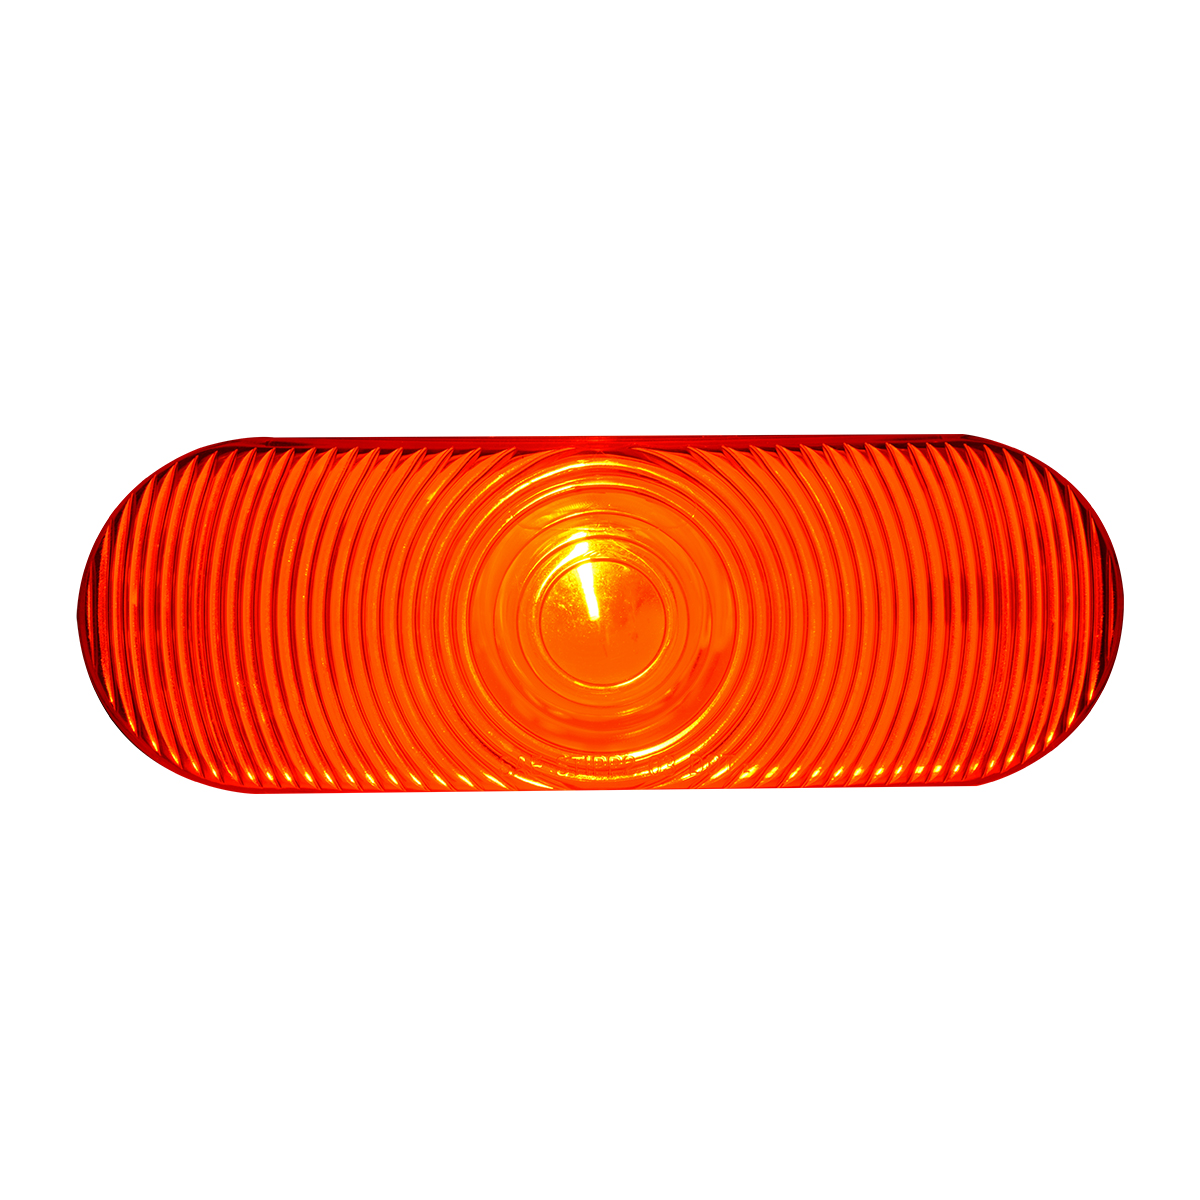 #80805 - Oval Sealed Incandescent Flat Red/Red Light - Slanted